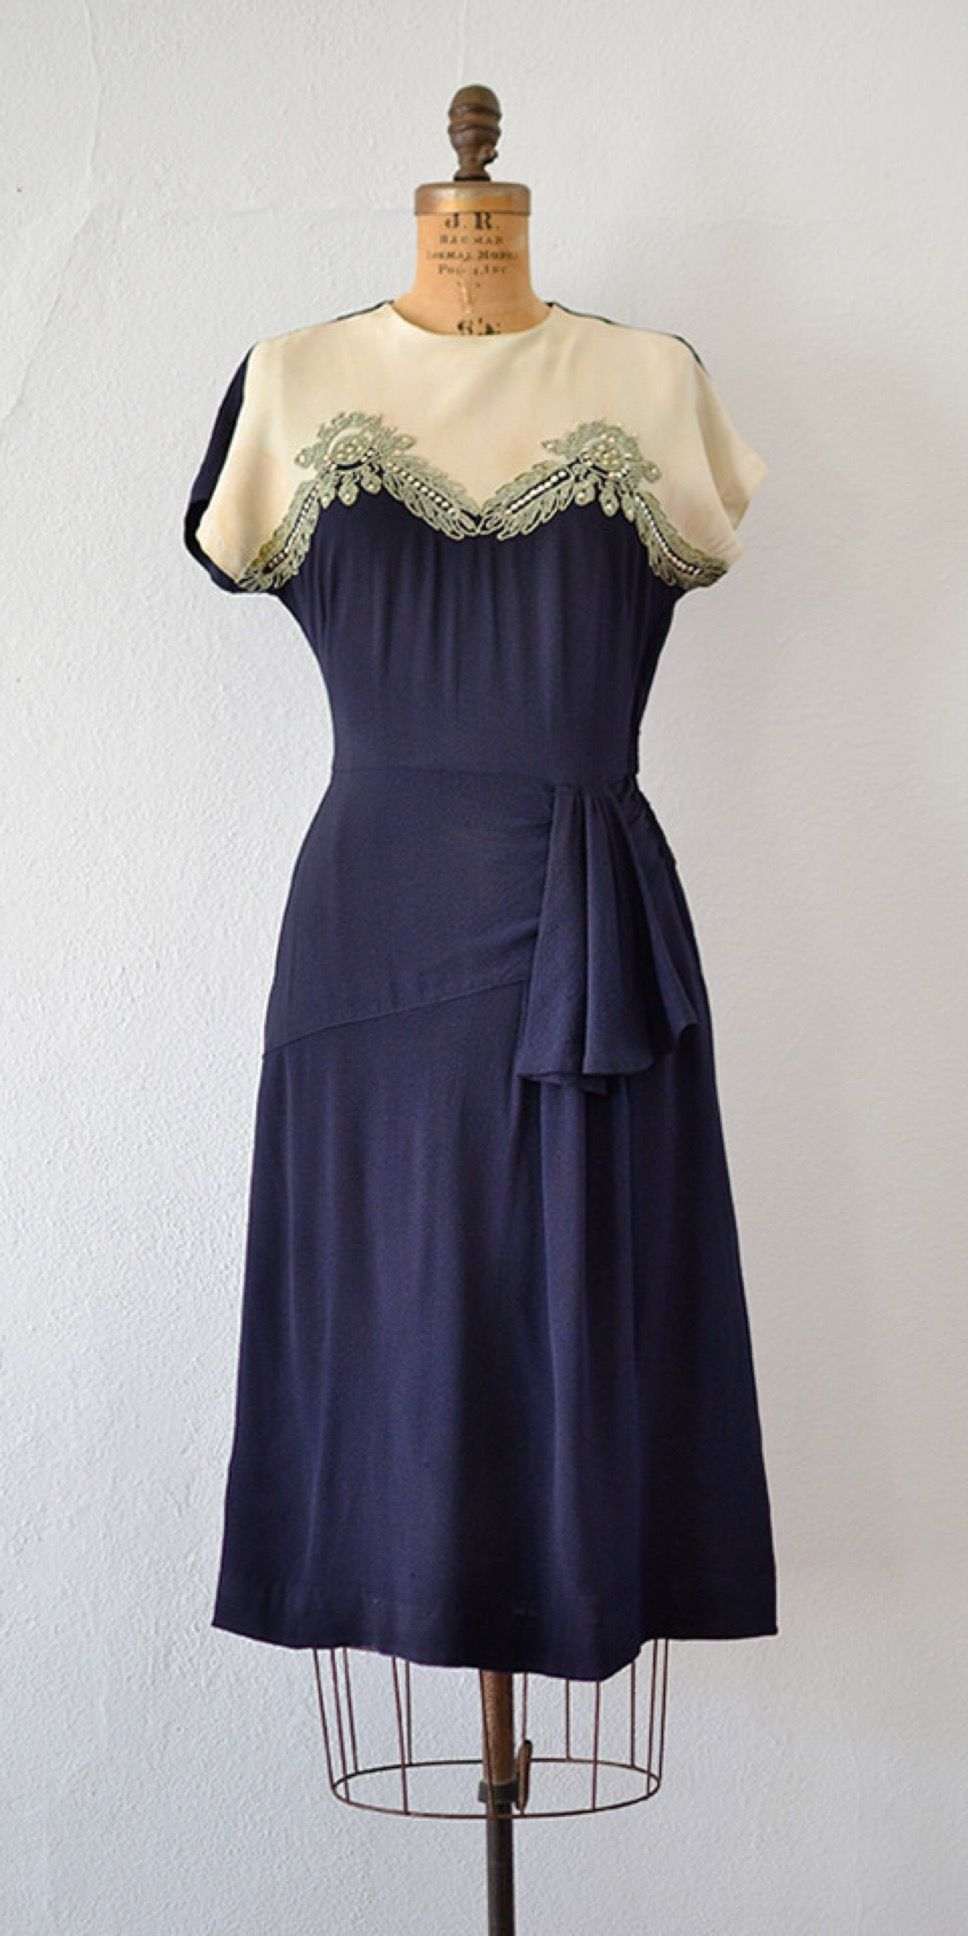 vintage 1940s dress | Manor Hamilton Dress from Adored Vintage ...